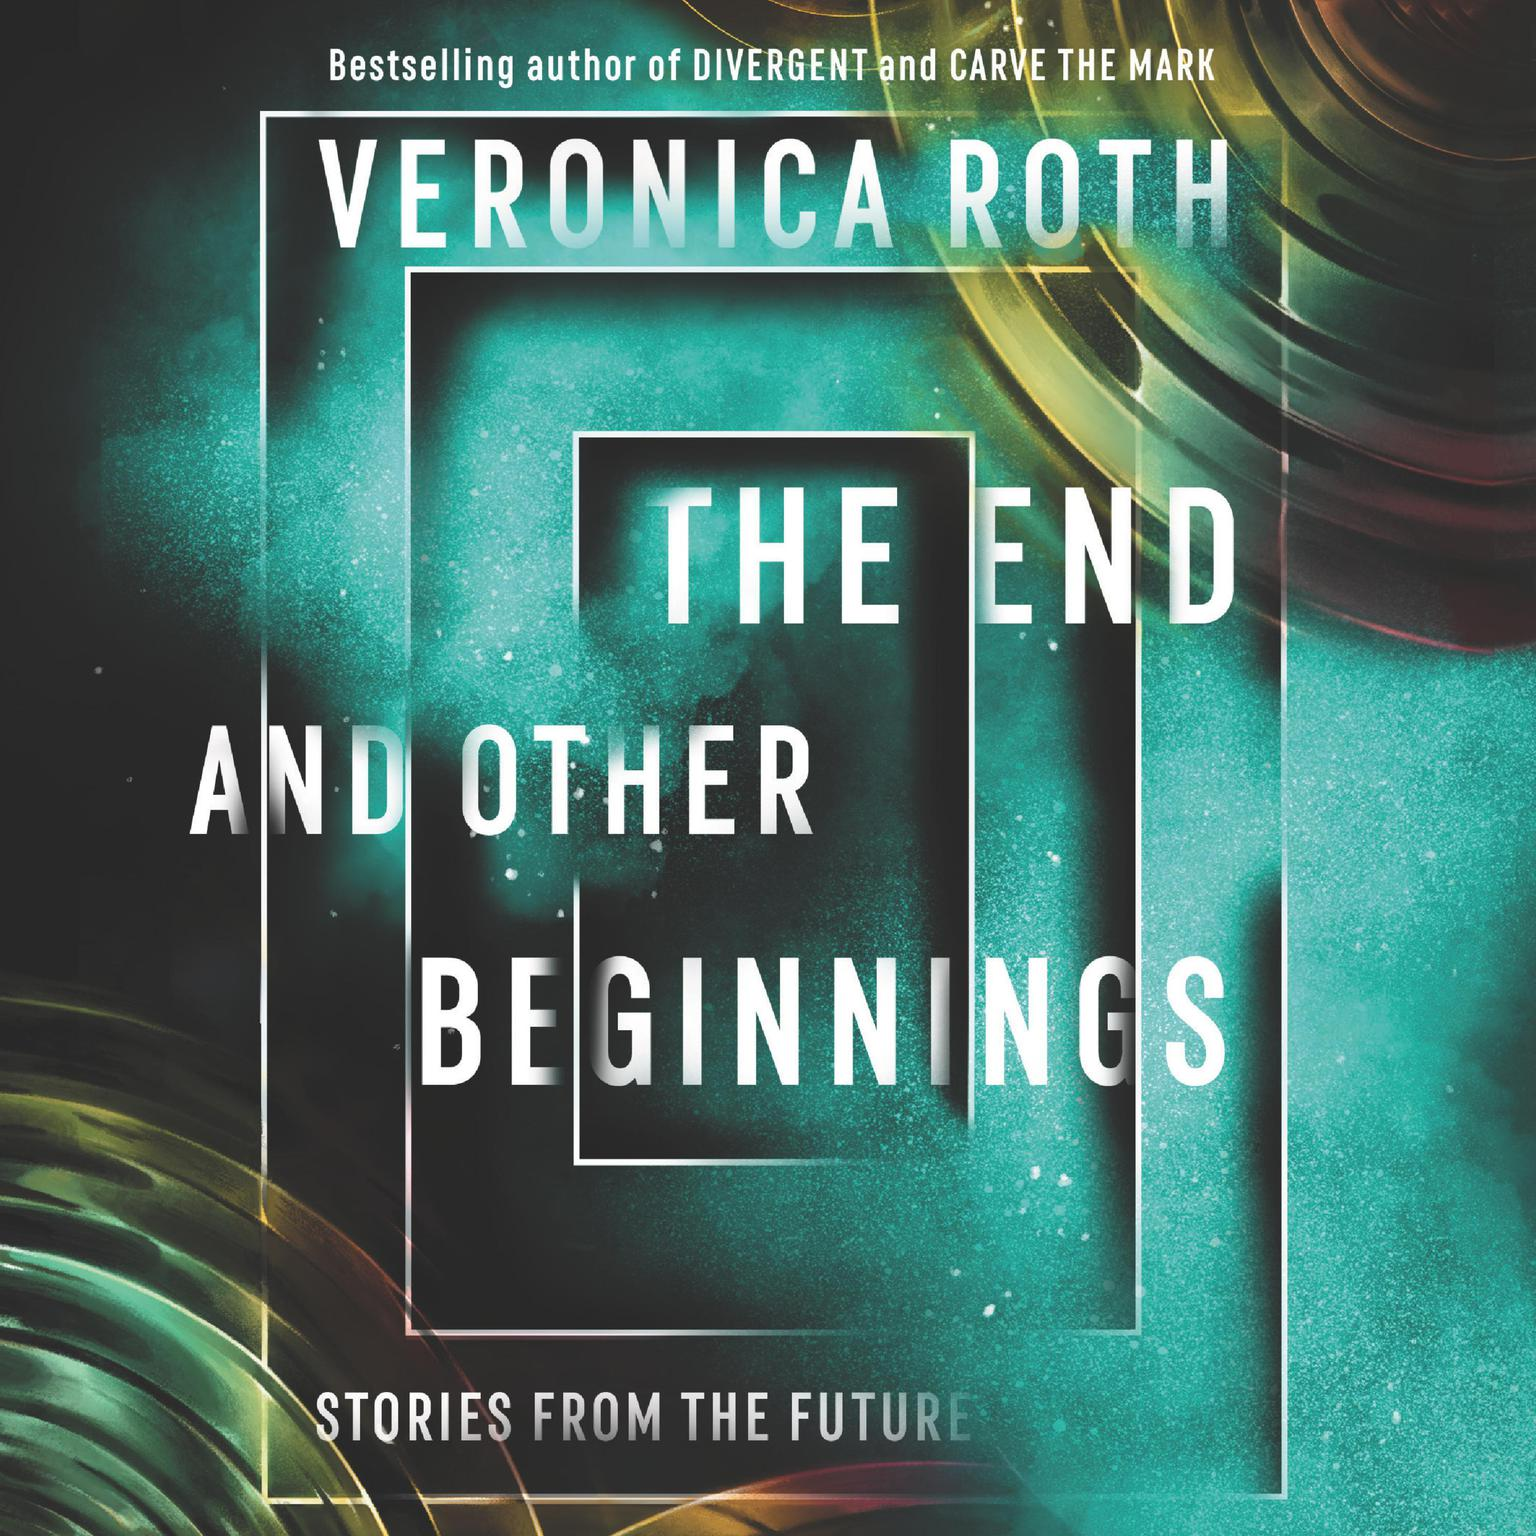 The End and Other Beginnings: Stories from the Future Audiobook, by Veronica Roth